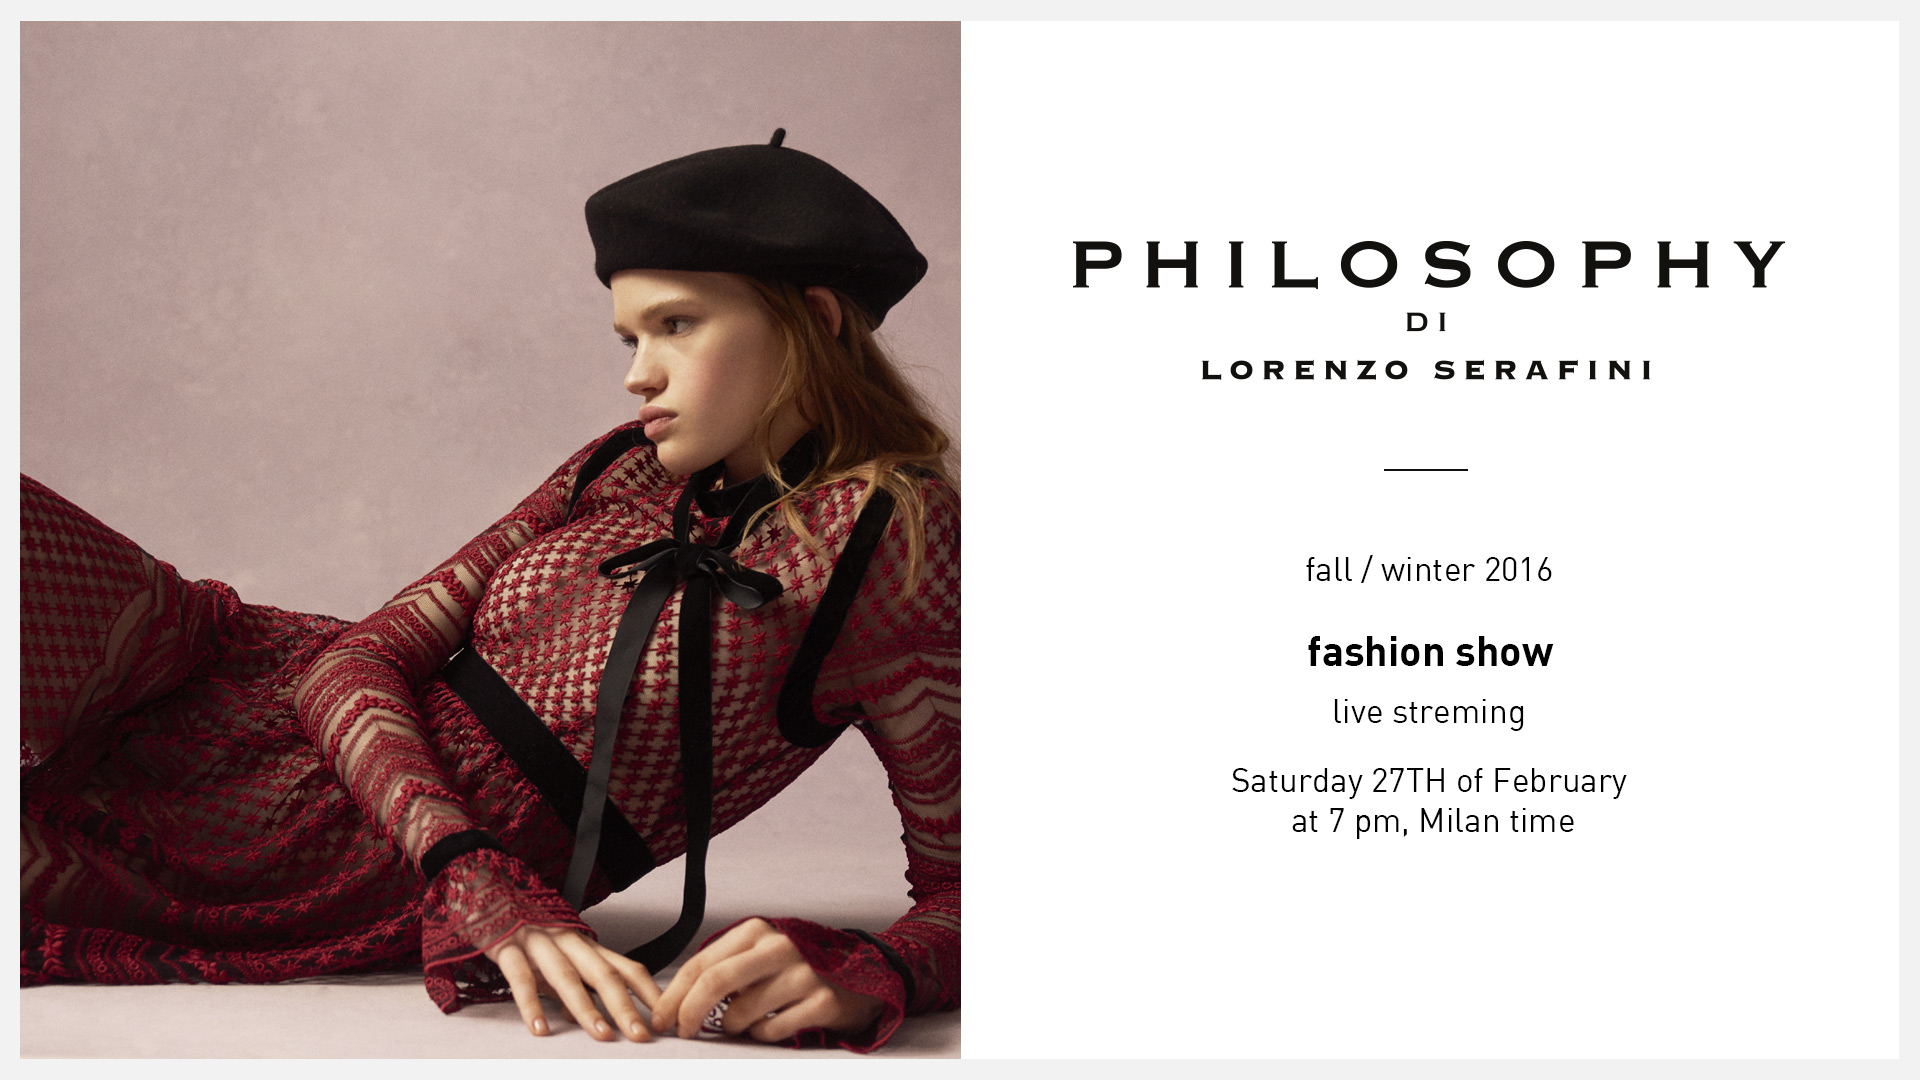 Philosophy di Lorenzo Serafini Fall Winter 2016 Women's Fashion Show Live StreamingPhilosophy di Lorenzo Serafini Fall Winter 2016 Women s Fashion Show Live Streaming